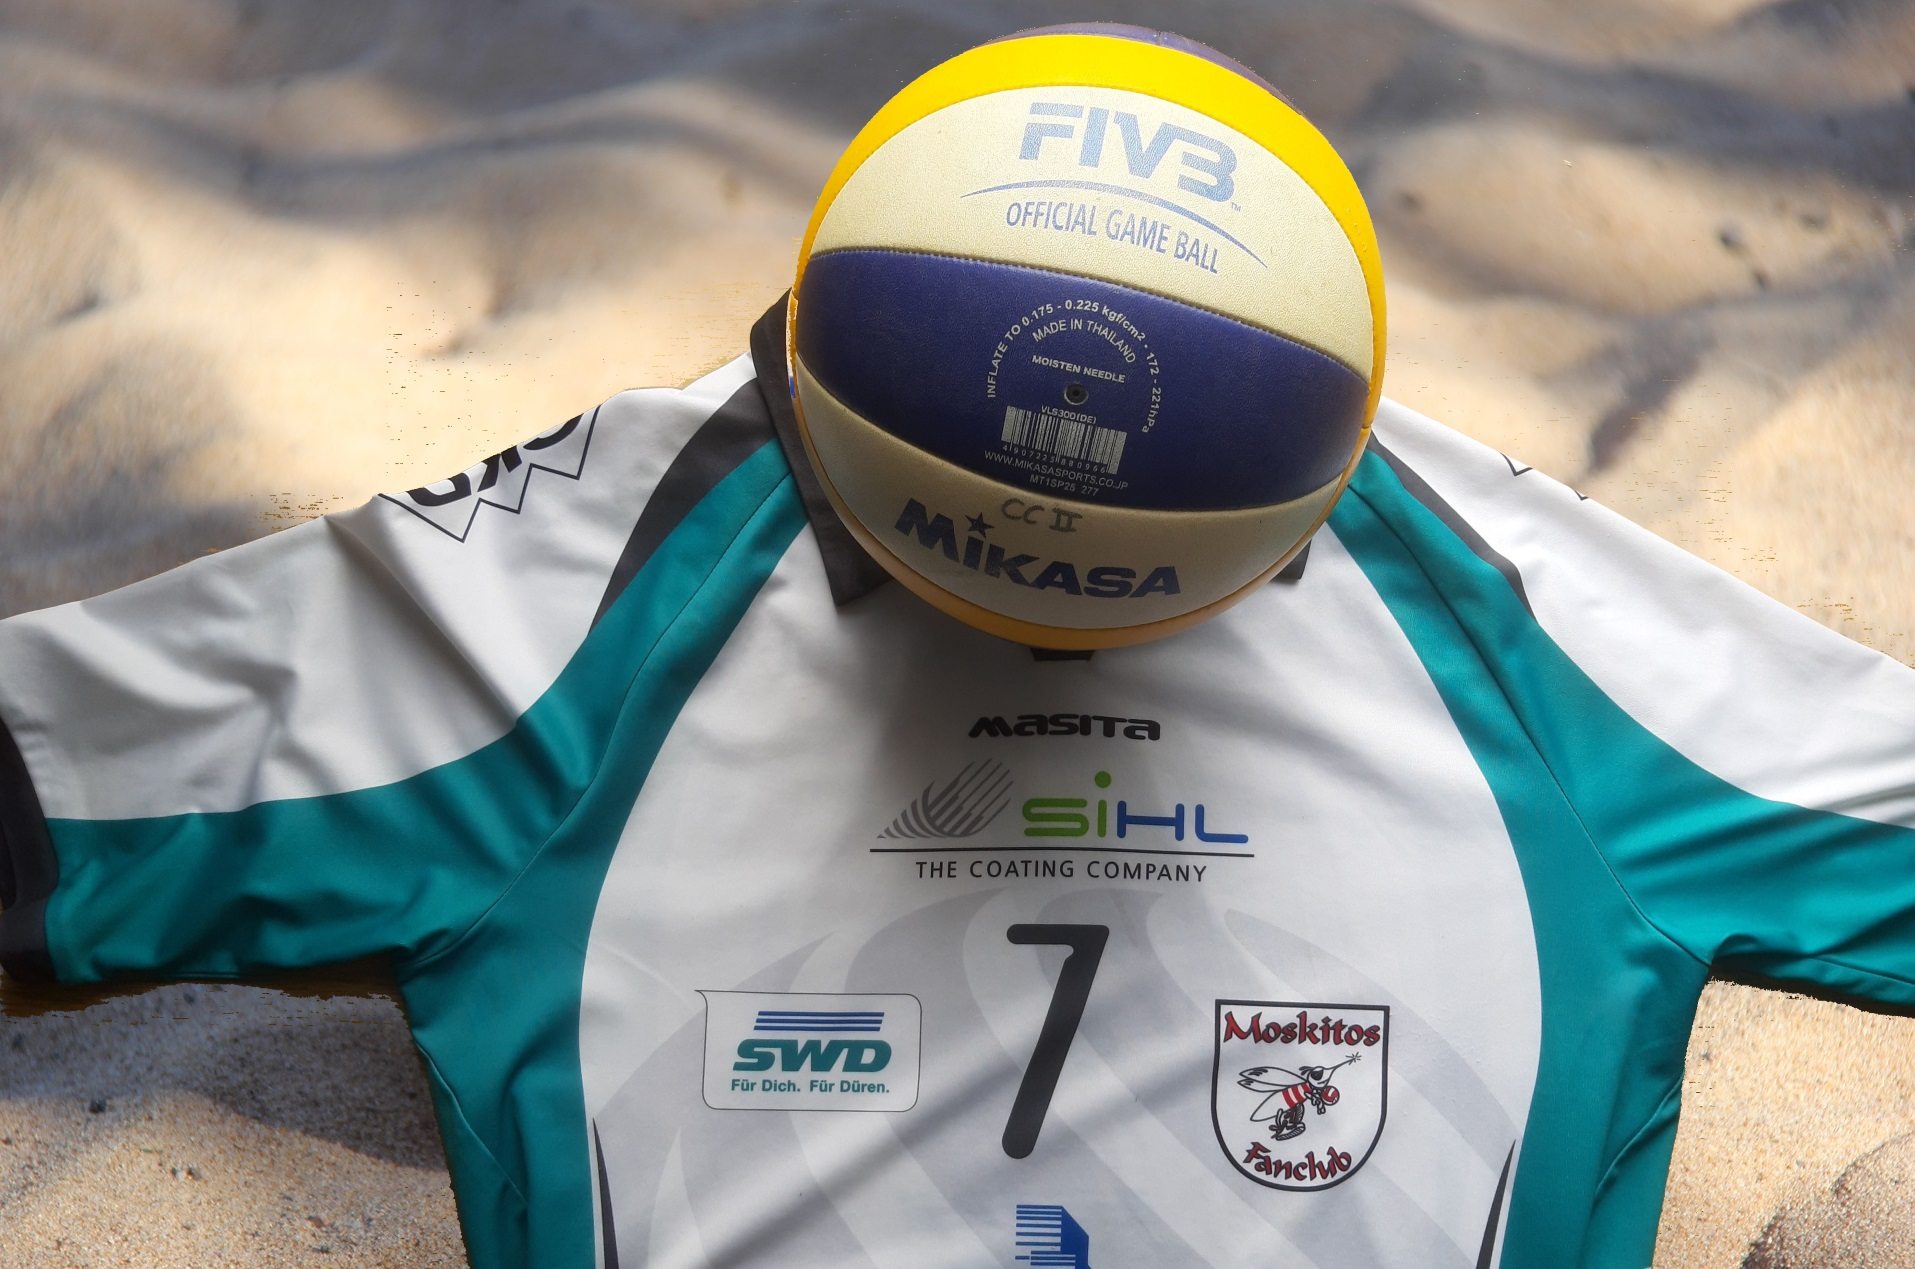 Moskitos-Shirt, Ball und Beach